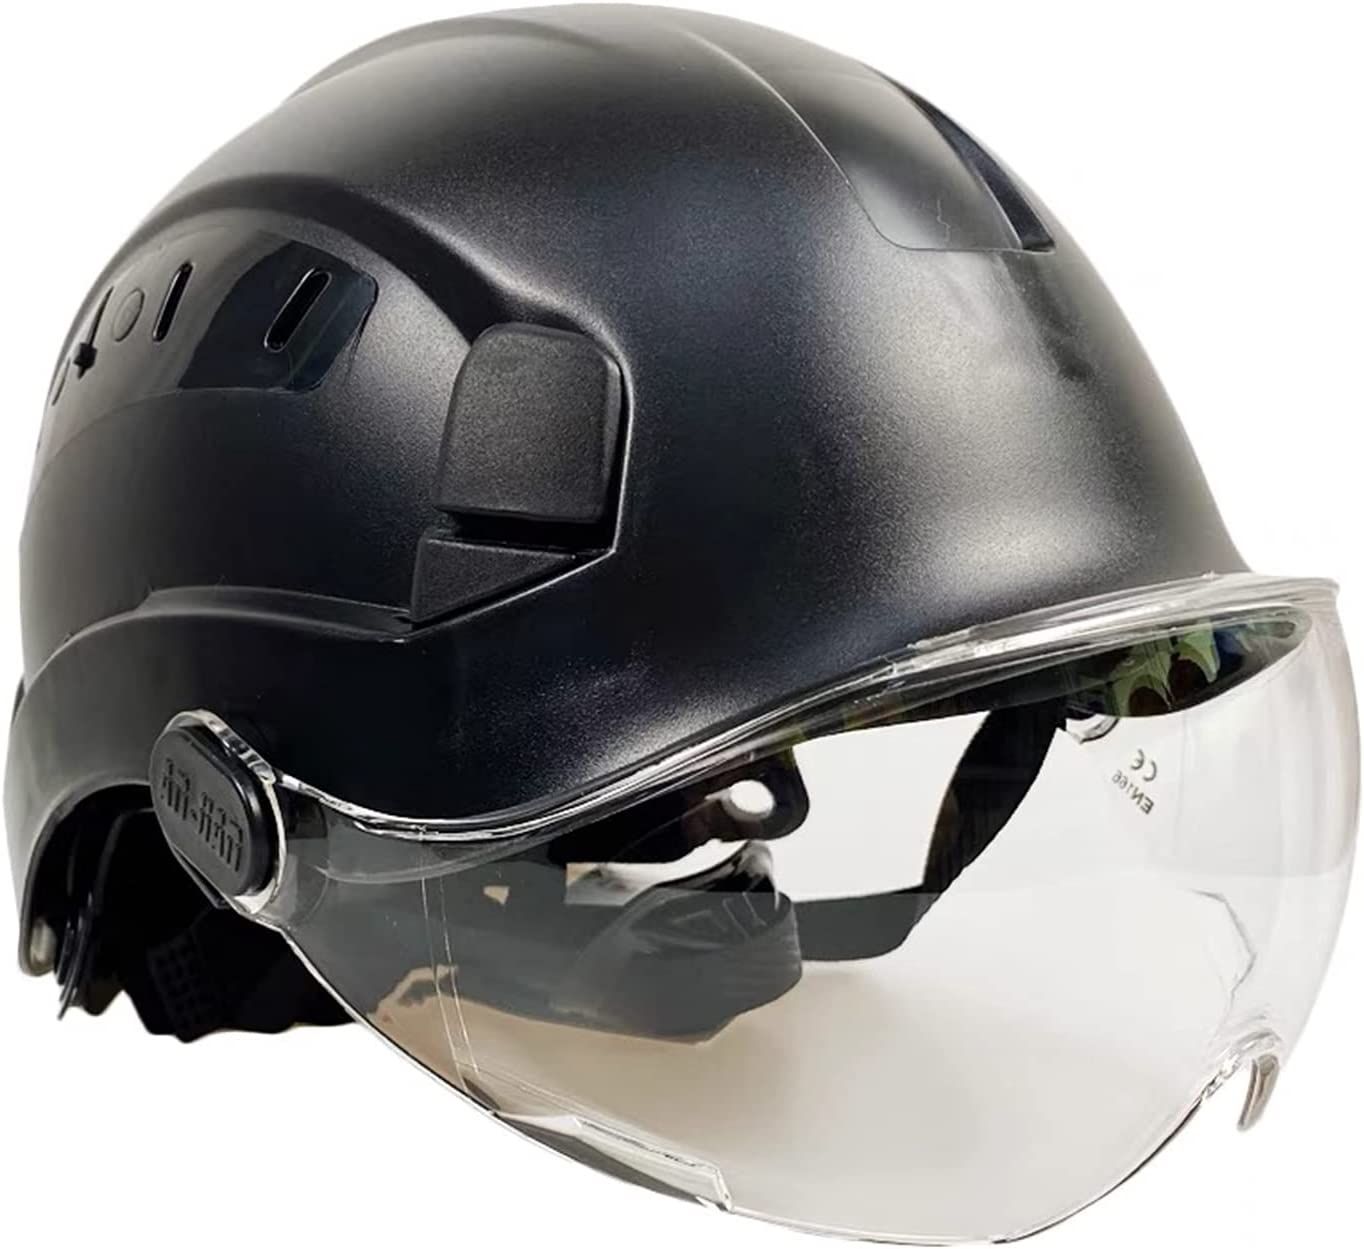 LOOFU Import Industry No. 1 Safety Hard Hat with and Clear Smoked Visor